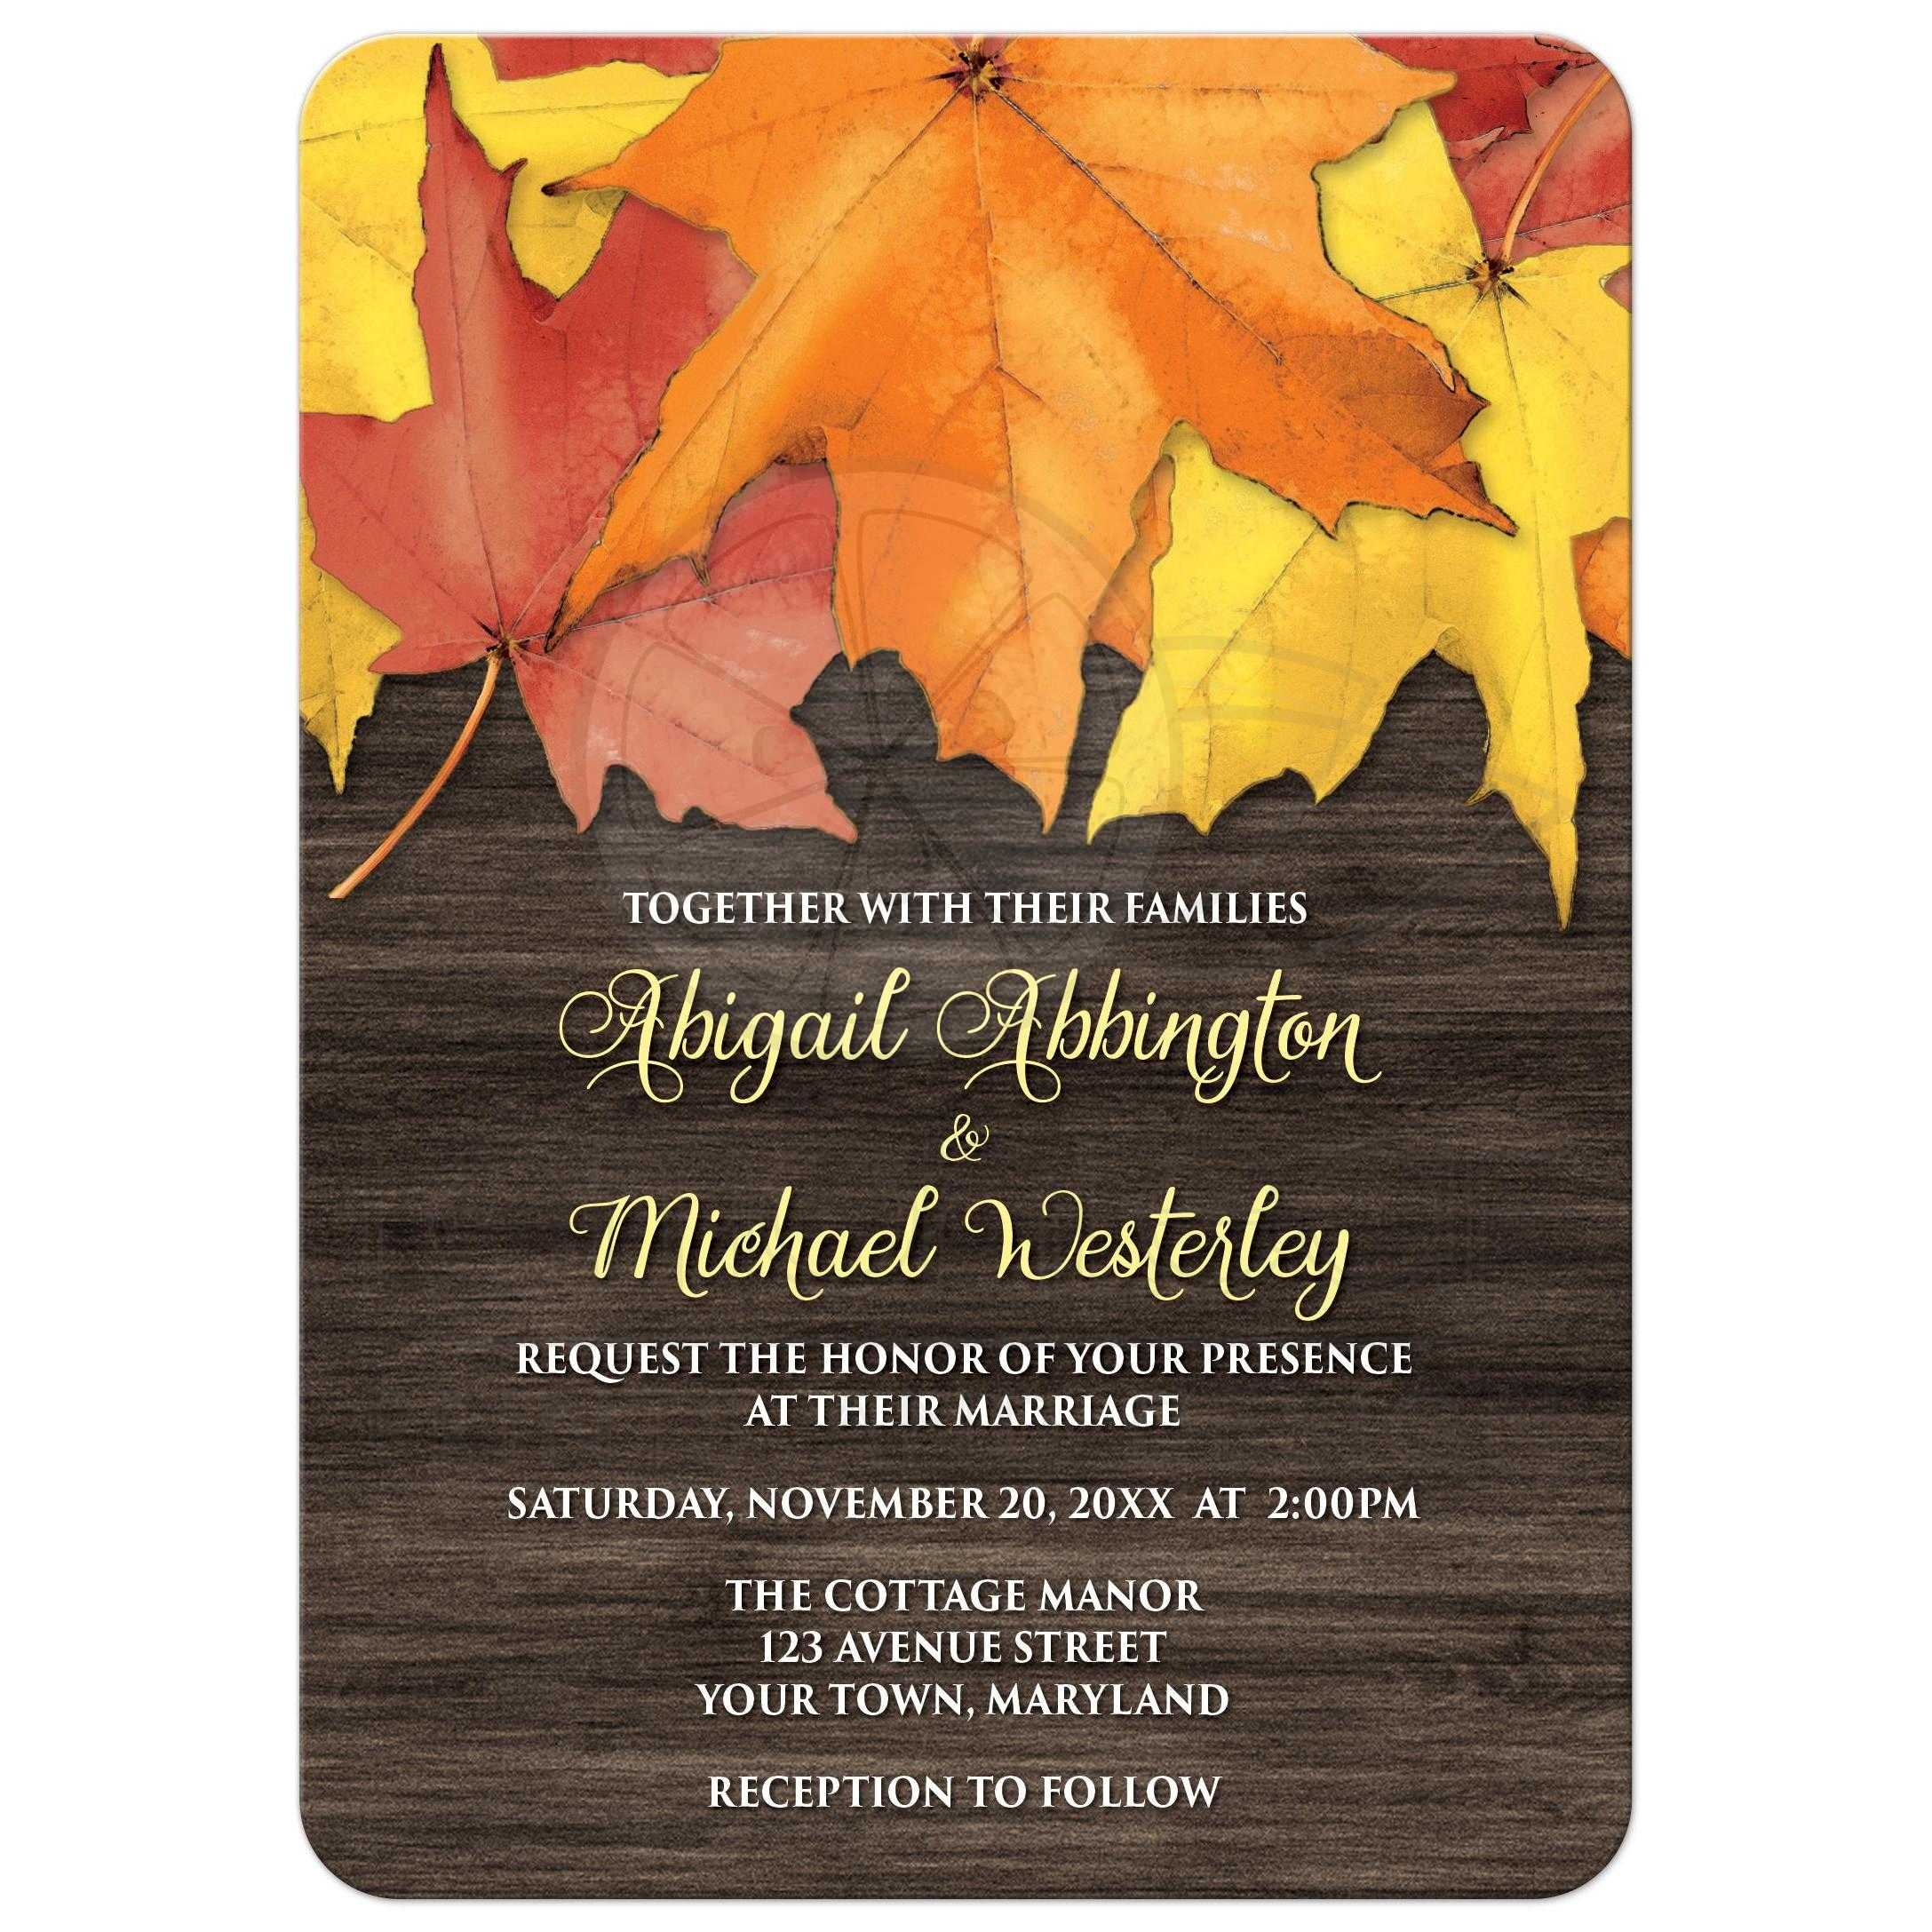 wedding invitations rustic autumn leaves and wood - Wood Wedding Invitations